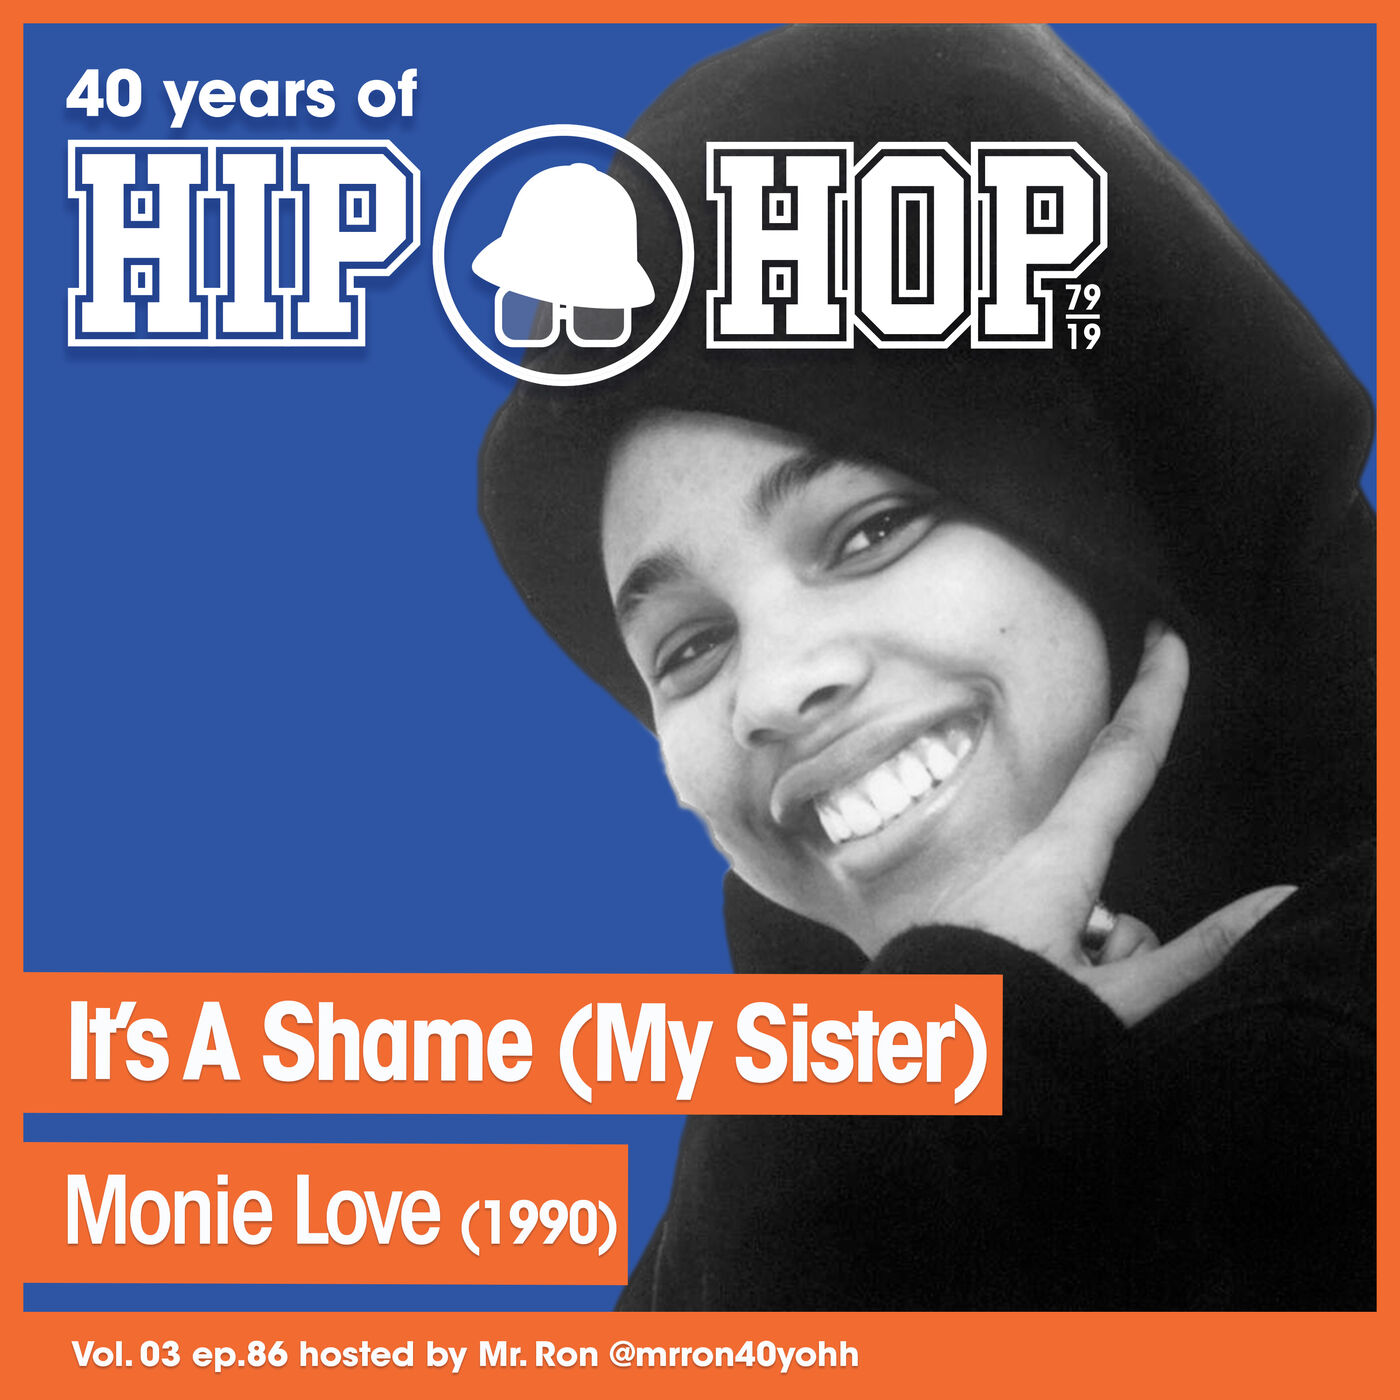 Vol.03 E86 - It`s A Shame (My Sister) by Monie Love released in 1990 - 40 Years of Hip Hop